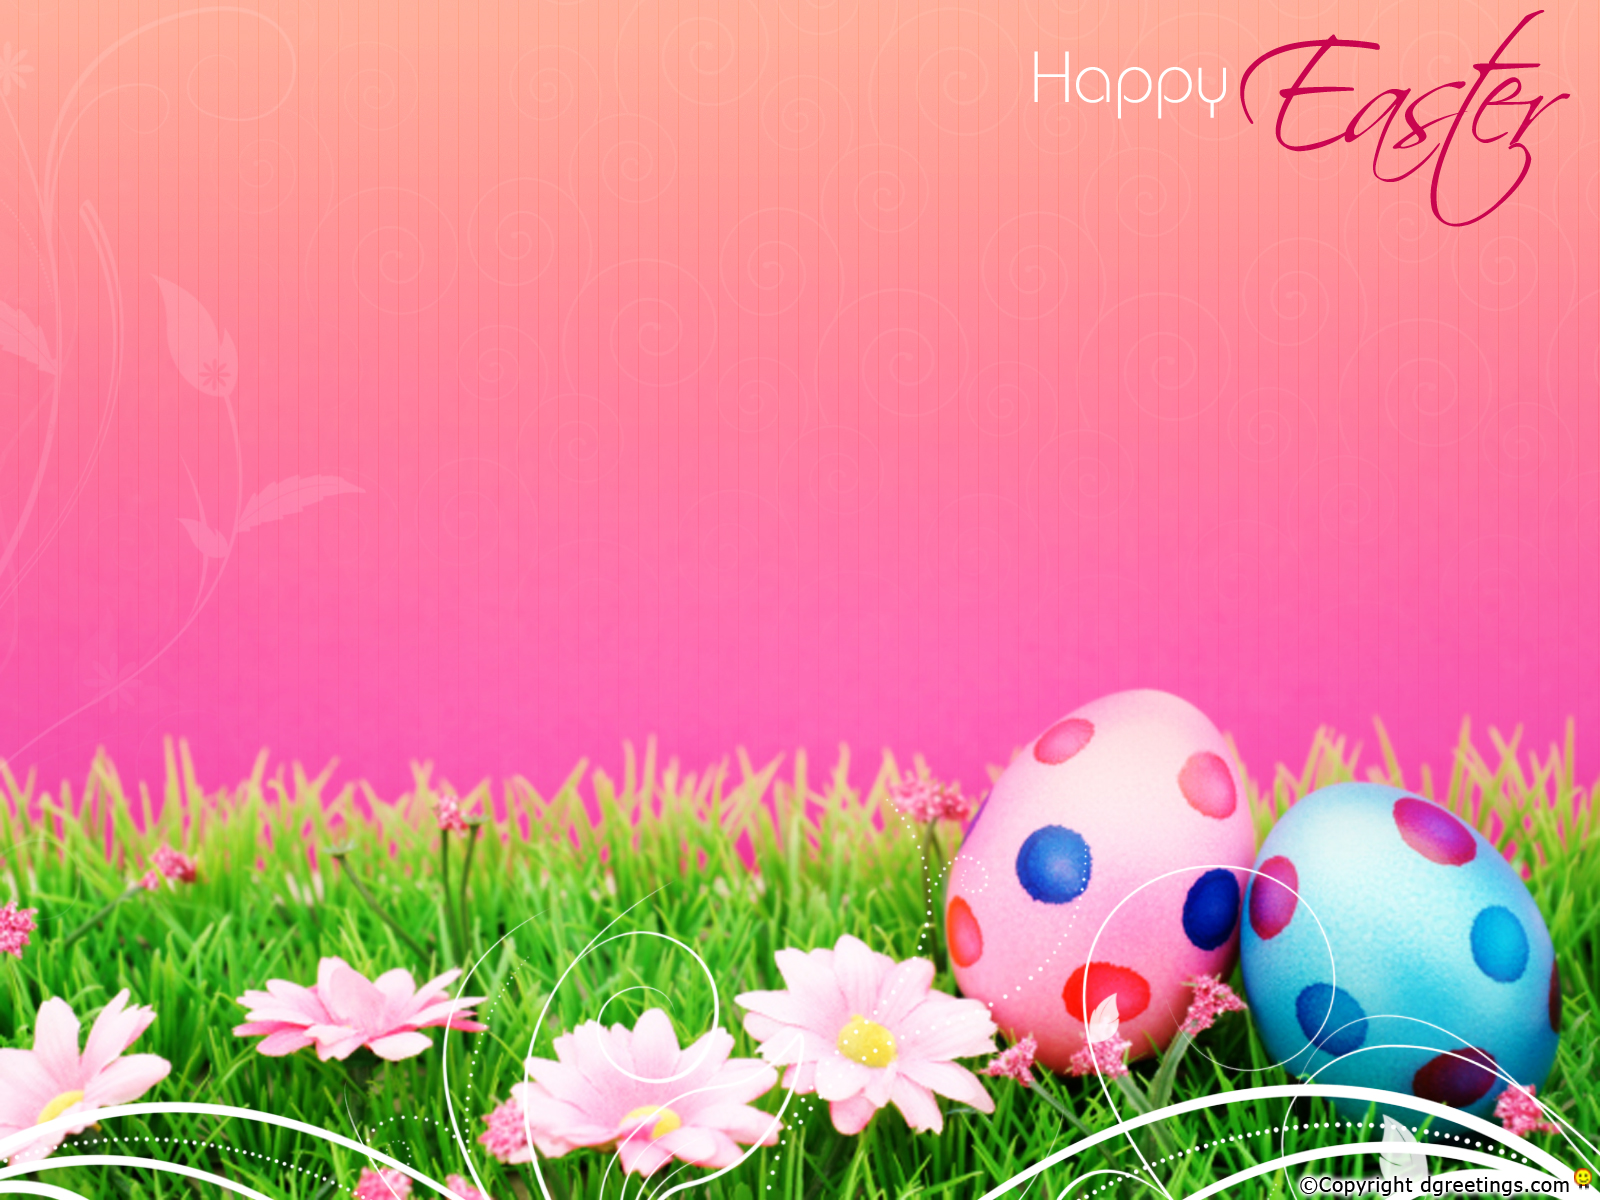 Happy Easter Desktop Backgrounds Christian Wallpapers 1600x1200